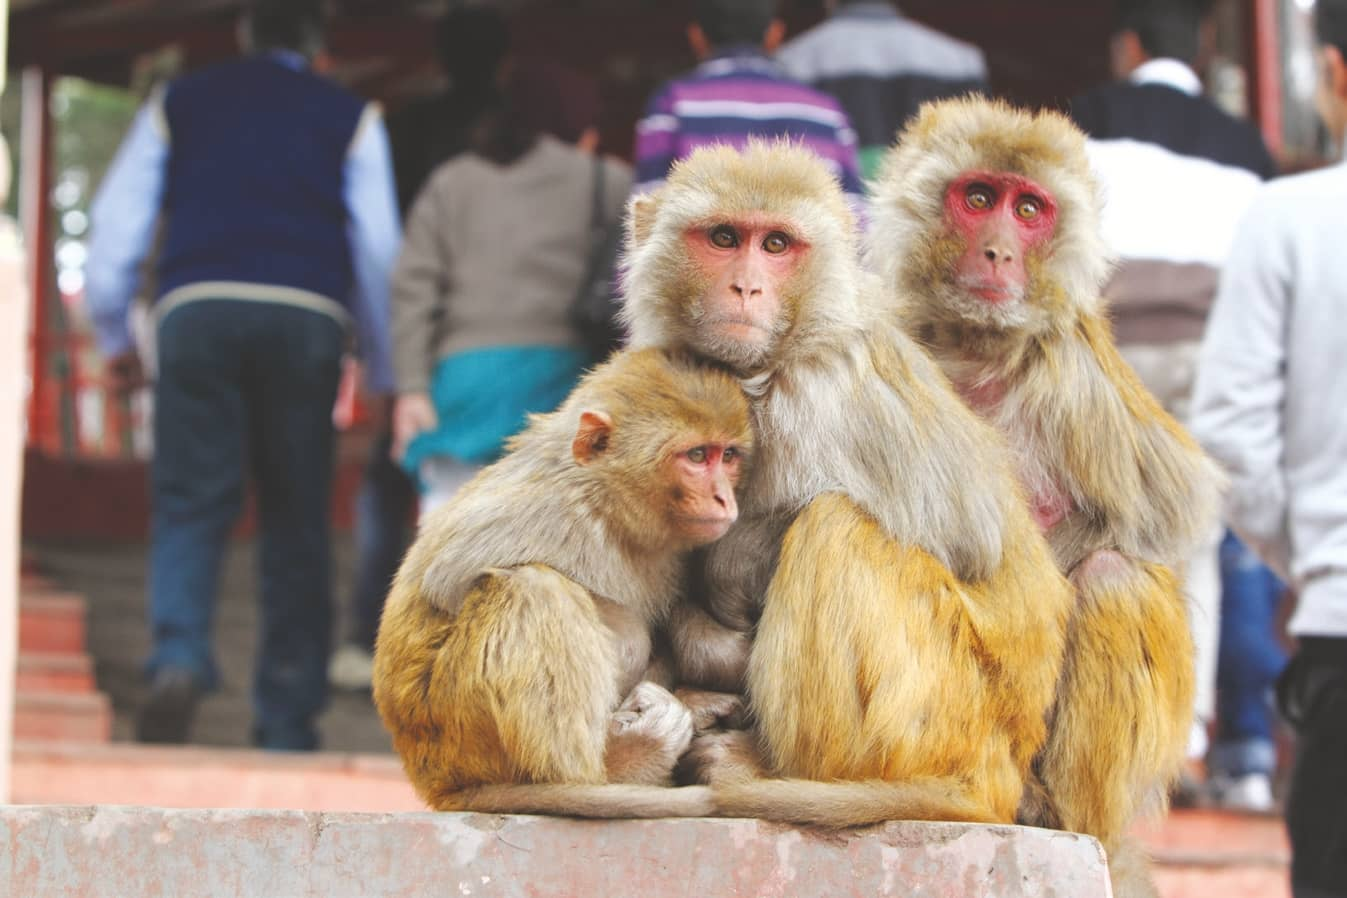 Monkey Menace in HP - Human–Animal Conflict And Other Issues